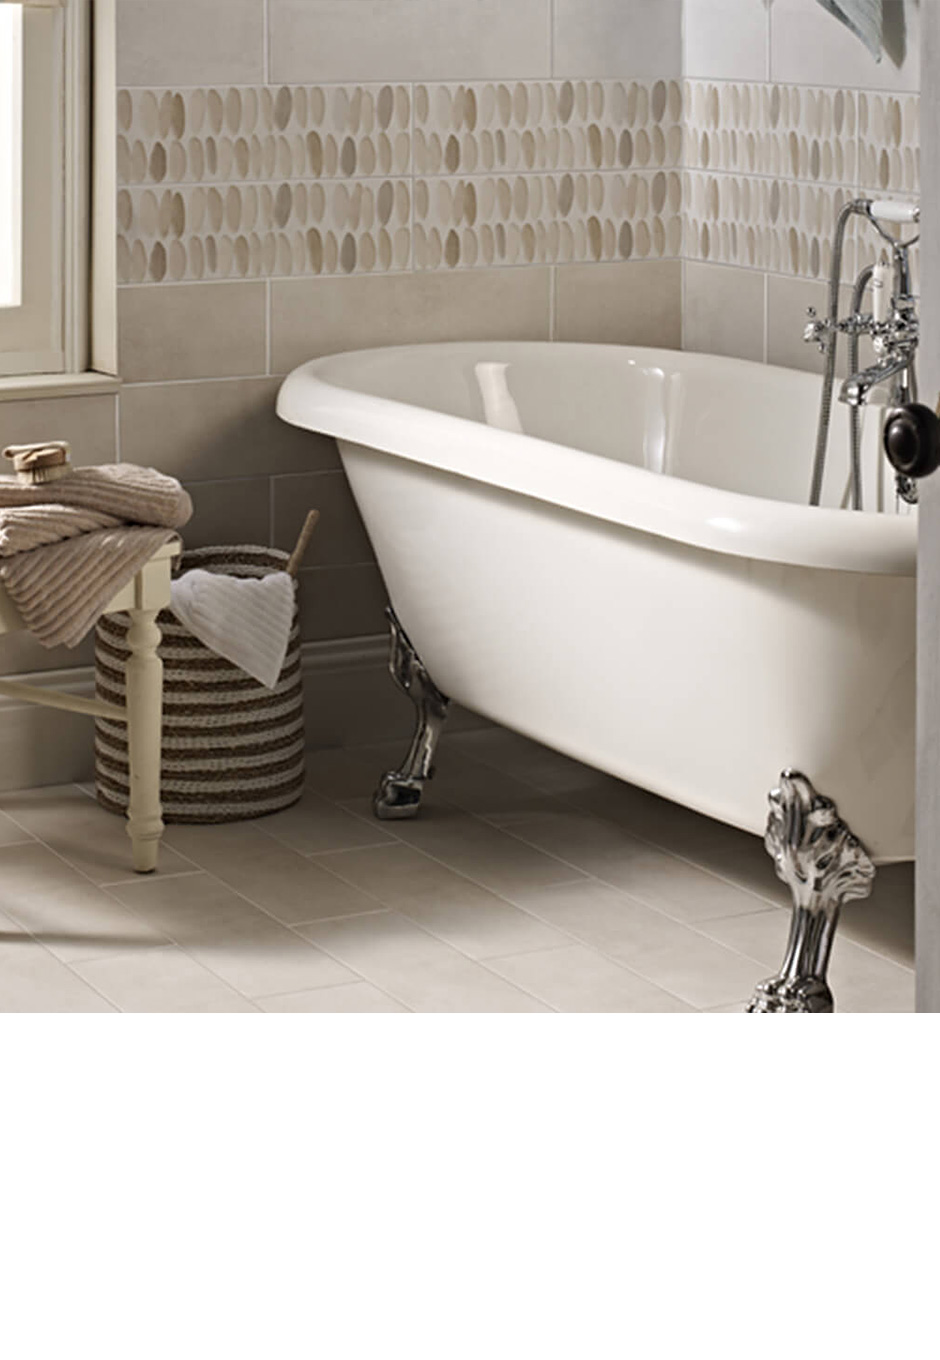 Laura ashley tiles explore the entire collection of designer tiles coastal dailygadgetfo Choice Image